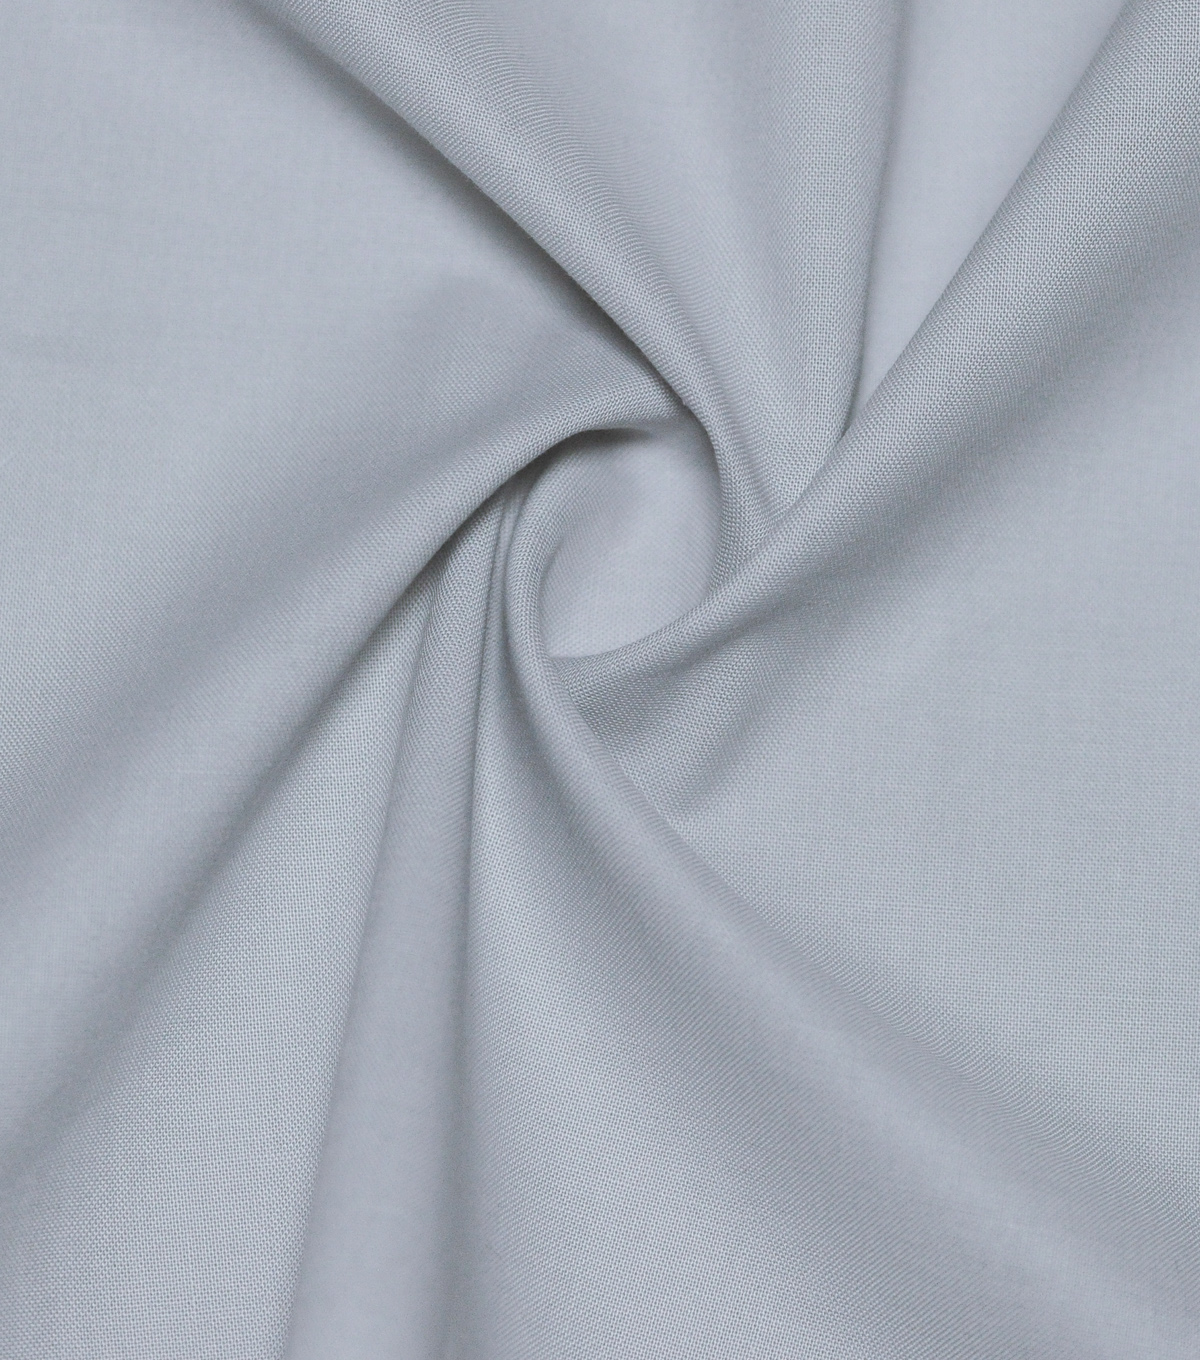 Premium Cotton Fabric -Astrid Gray